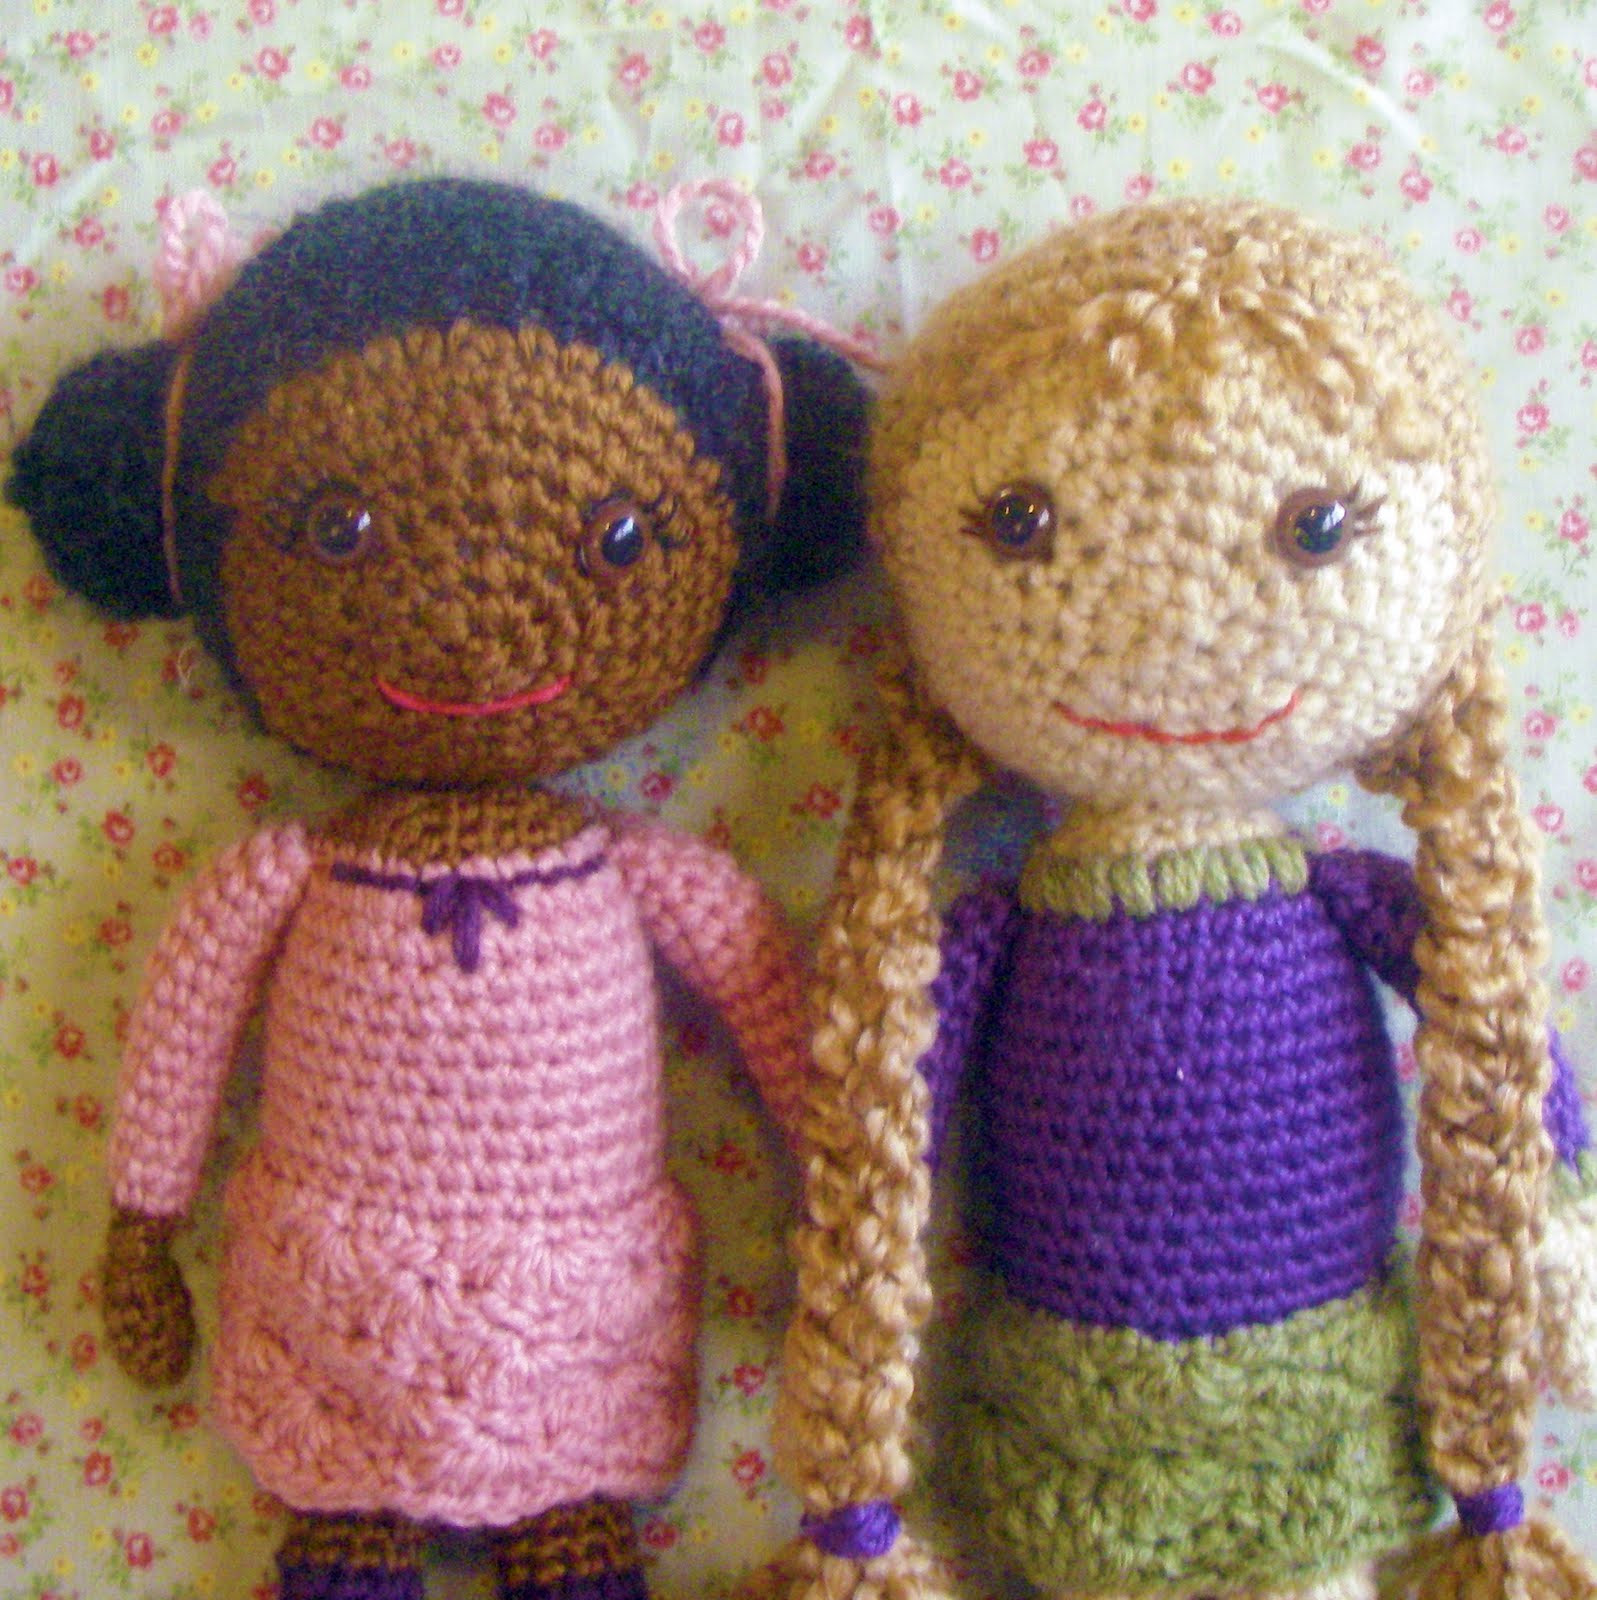 "Doll Patterns Inspirational 12"" Doll Crochet Pattern Mamacheemamachee Of Doll Patterns Inspirational 12"" Doll Crochet Pattern Mamacheemamachee"